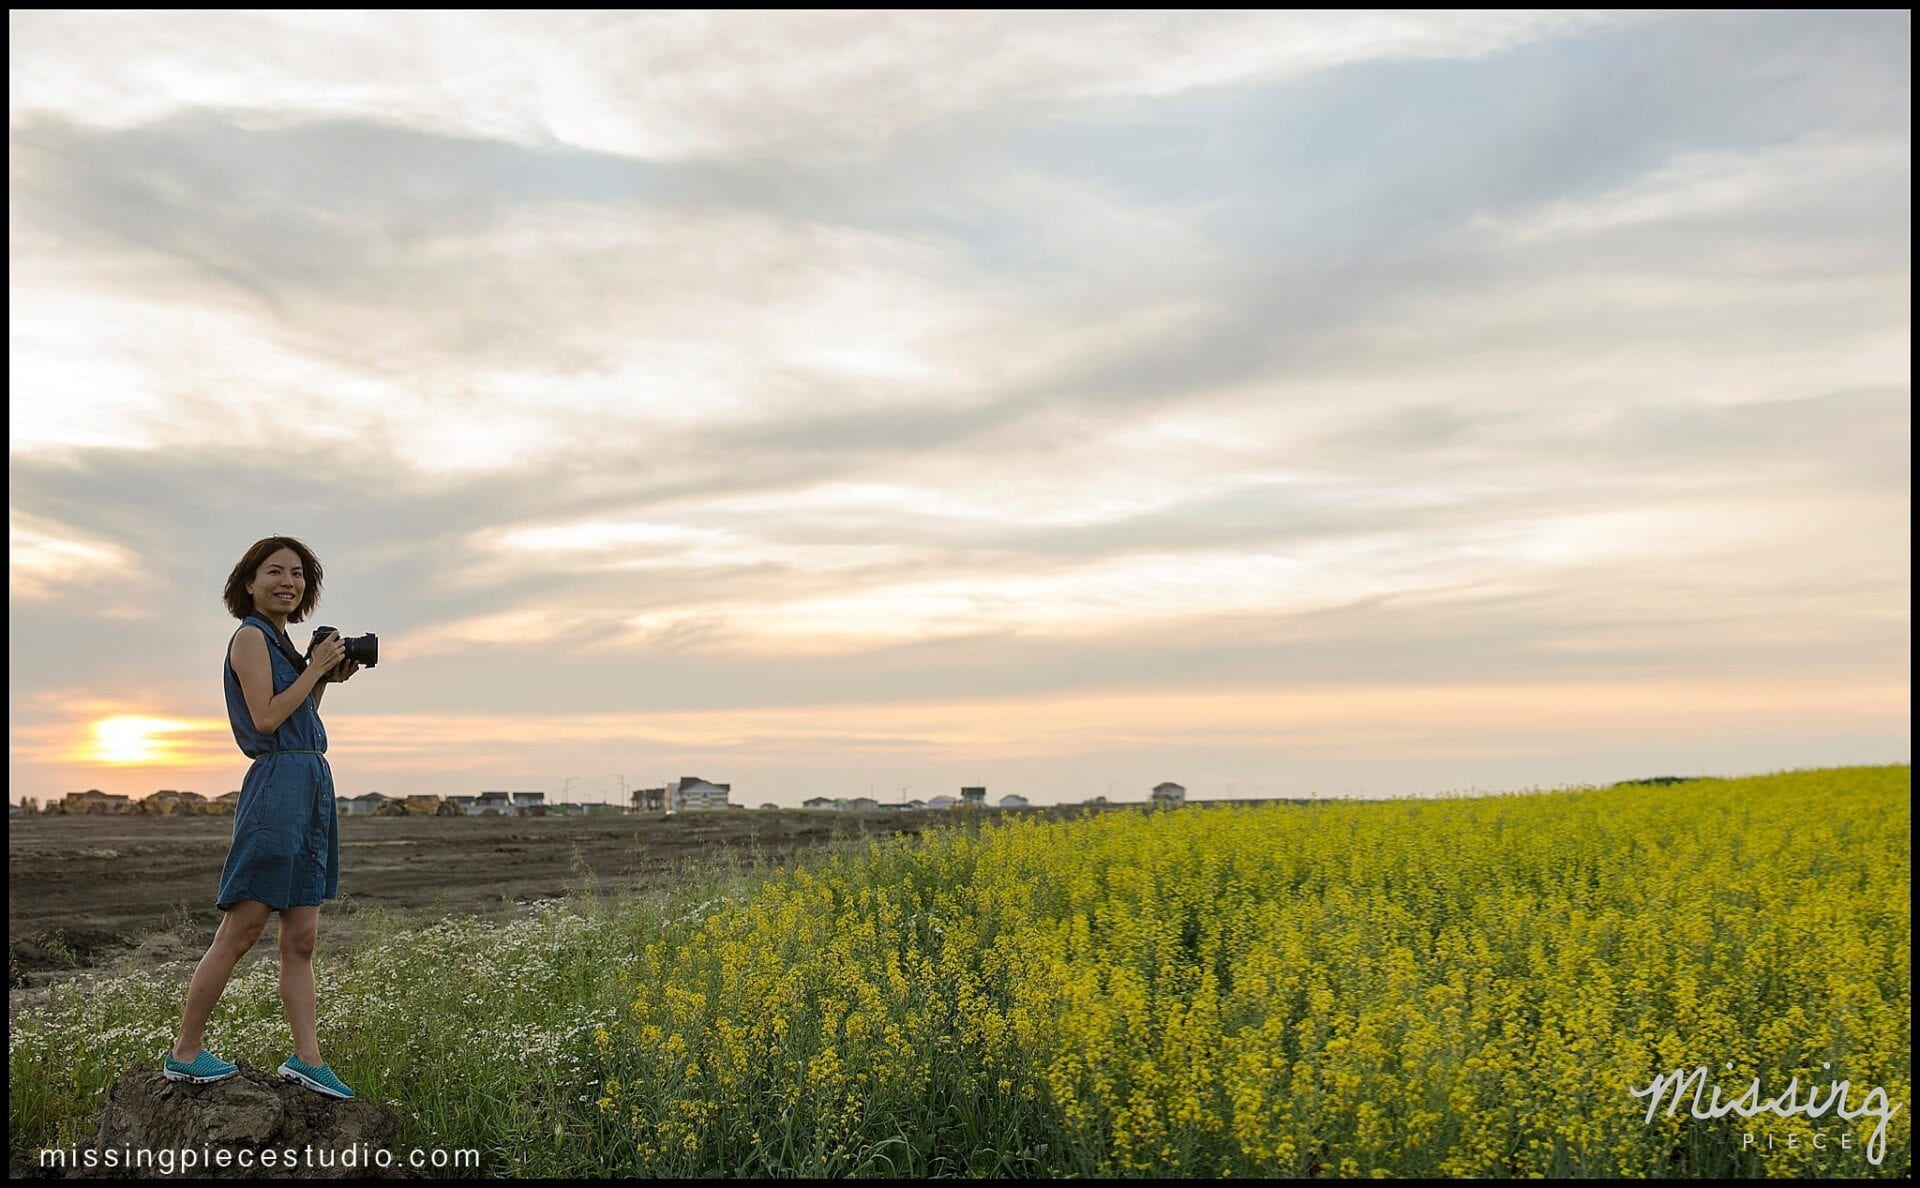 My cousin posing in a beautiful canola field during sunset. You can see how tall these can go just by the way she jumps! Photo taken with an SB700 and Nikon D7000